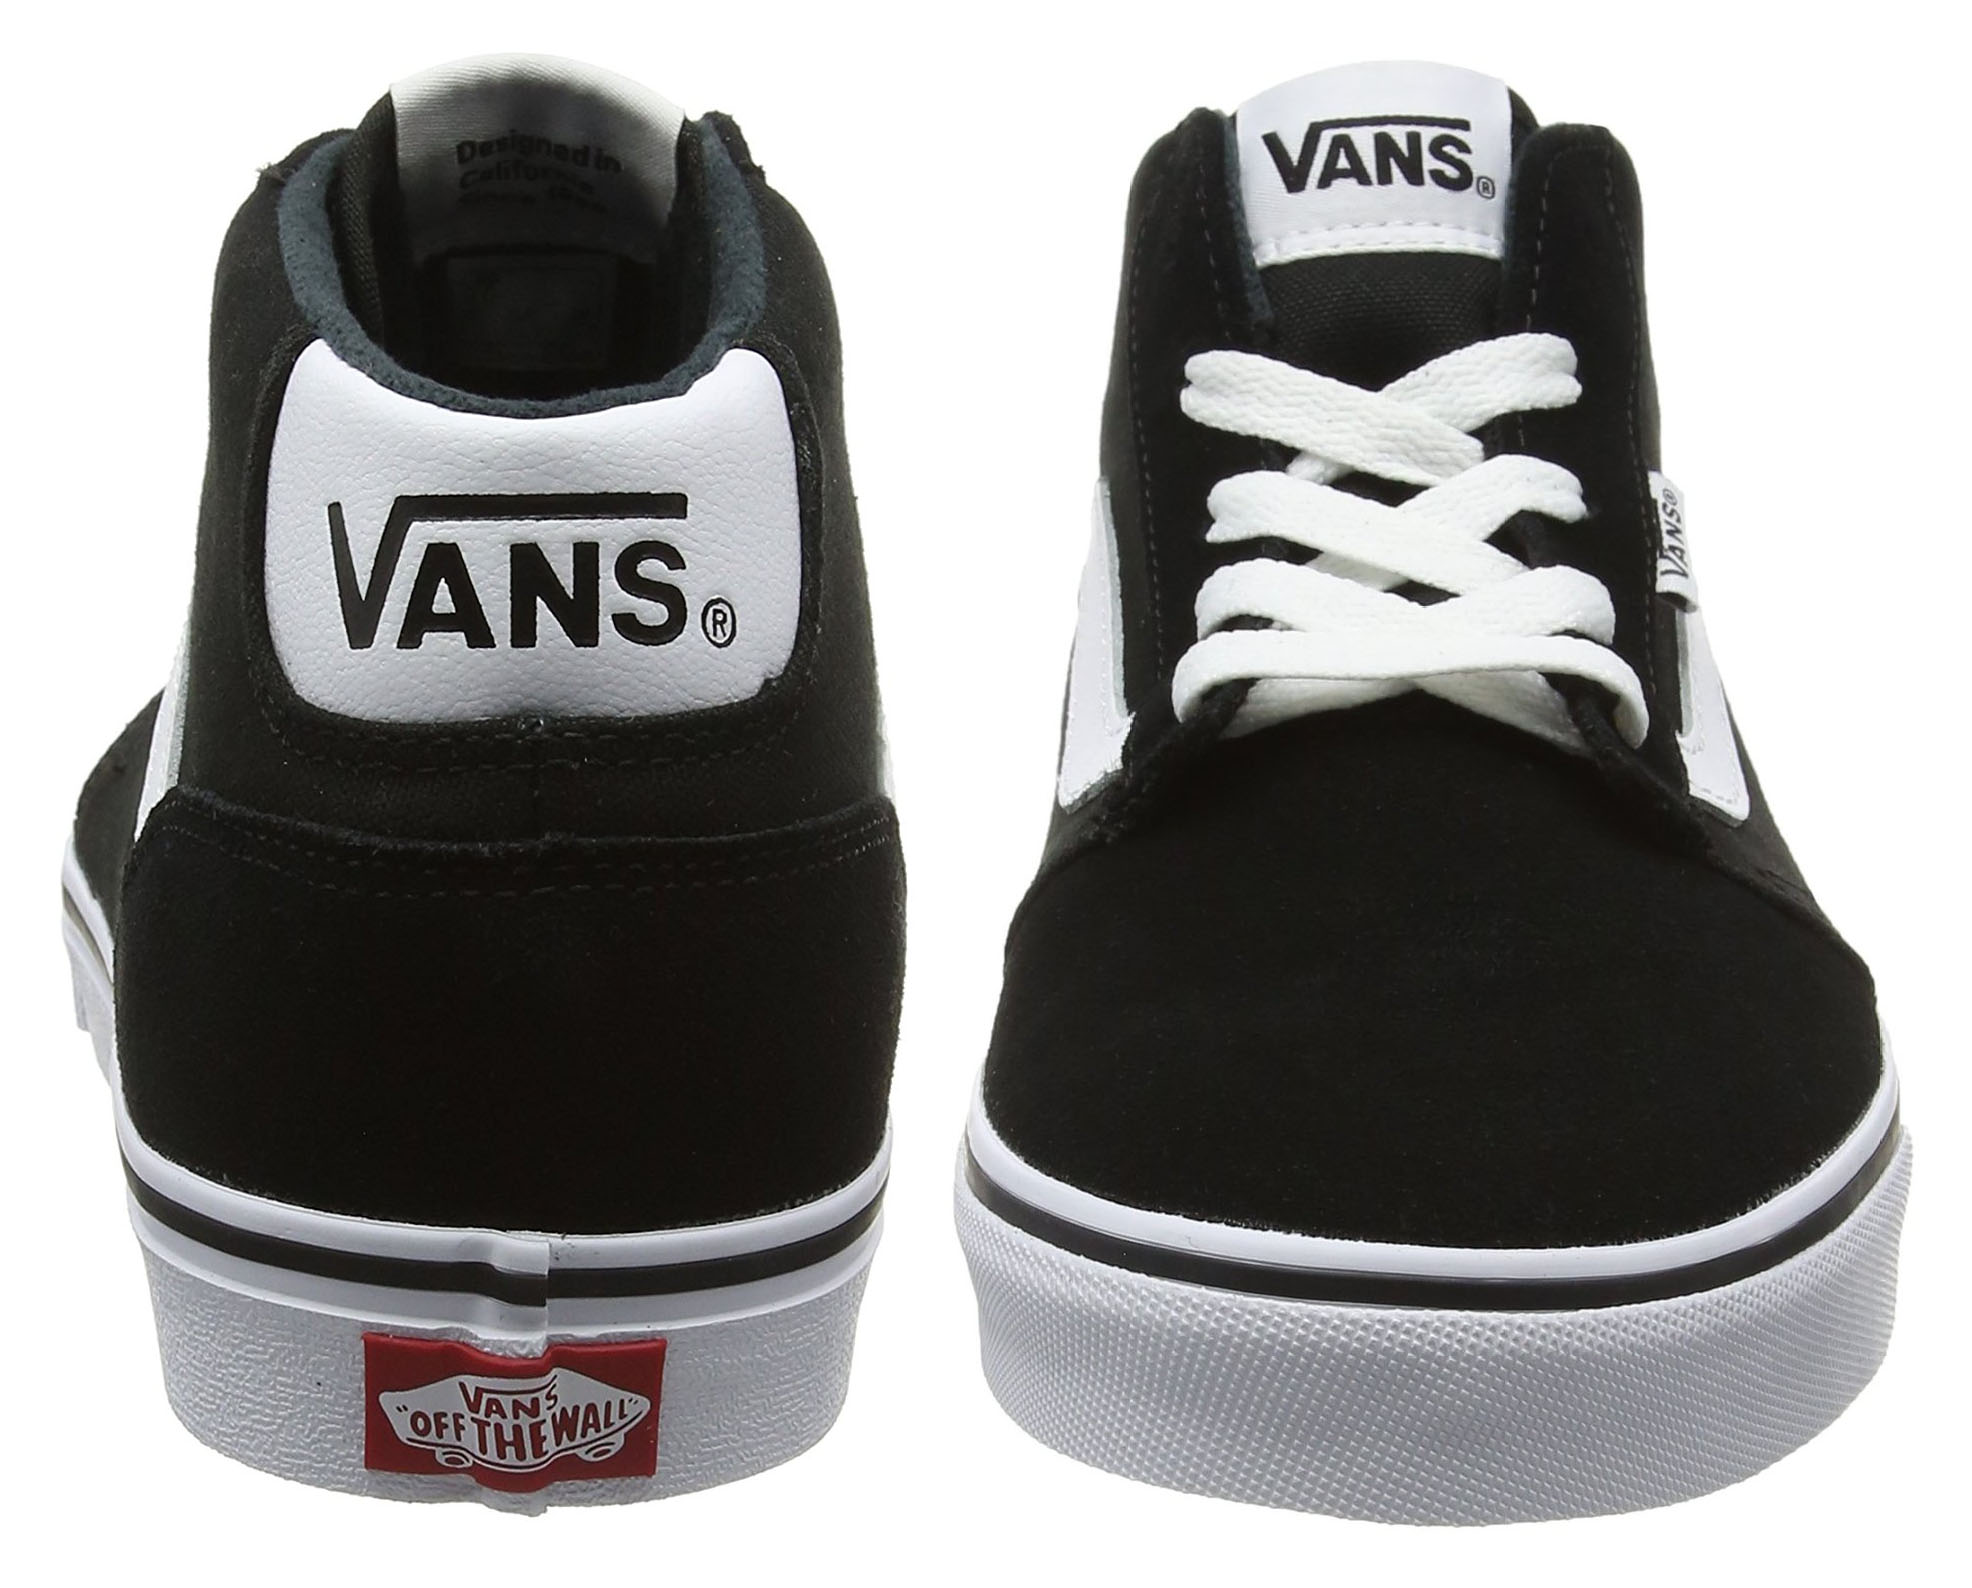 8df6375a65a333 Click on the Image to Enlarge. More Details. These stylish VANS Chapman Mid  Suede Canvas Stripe Trainers ...